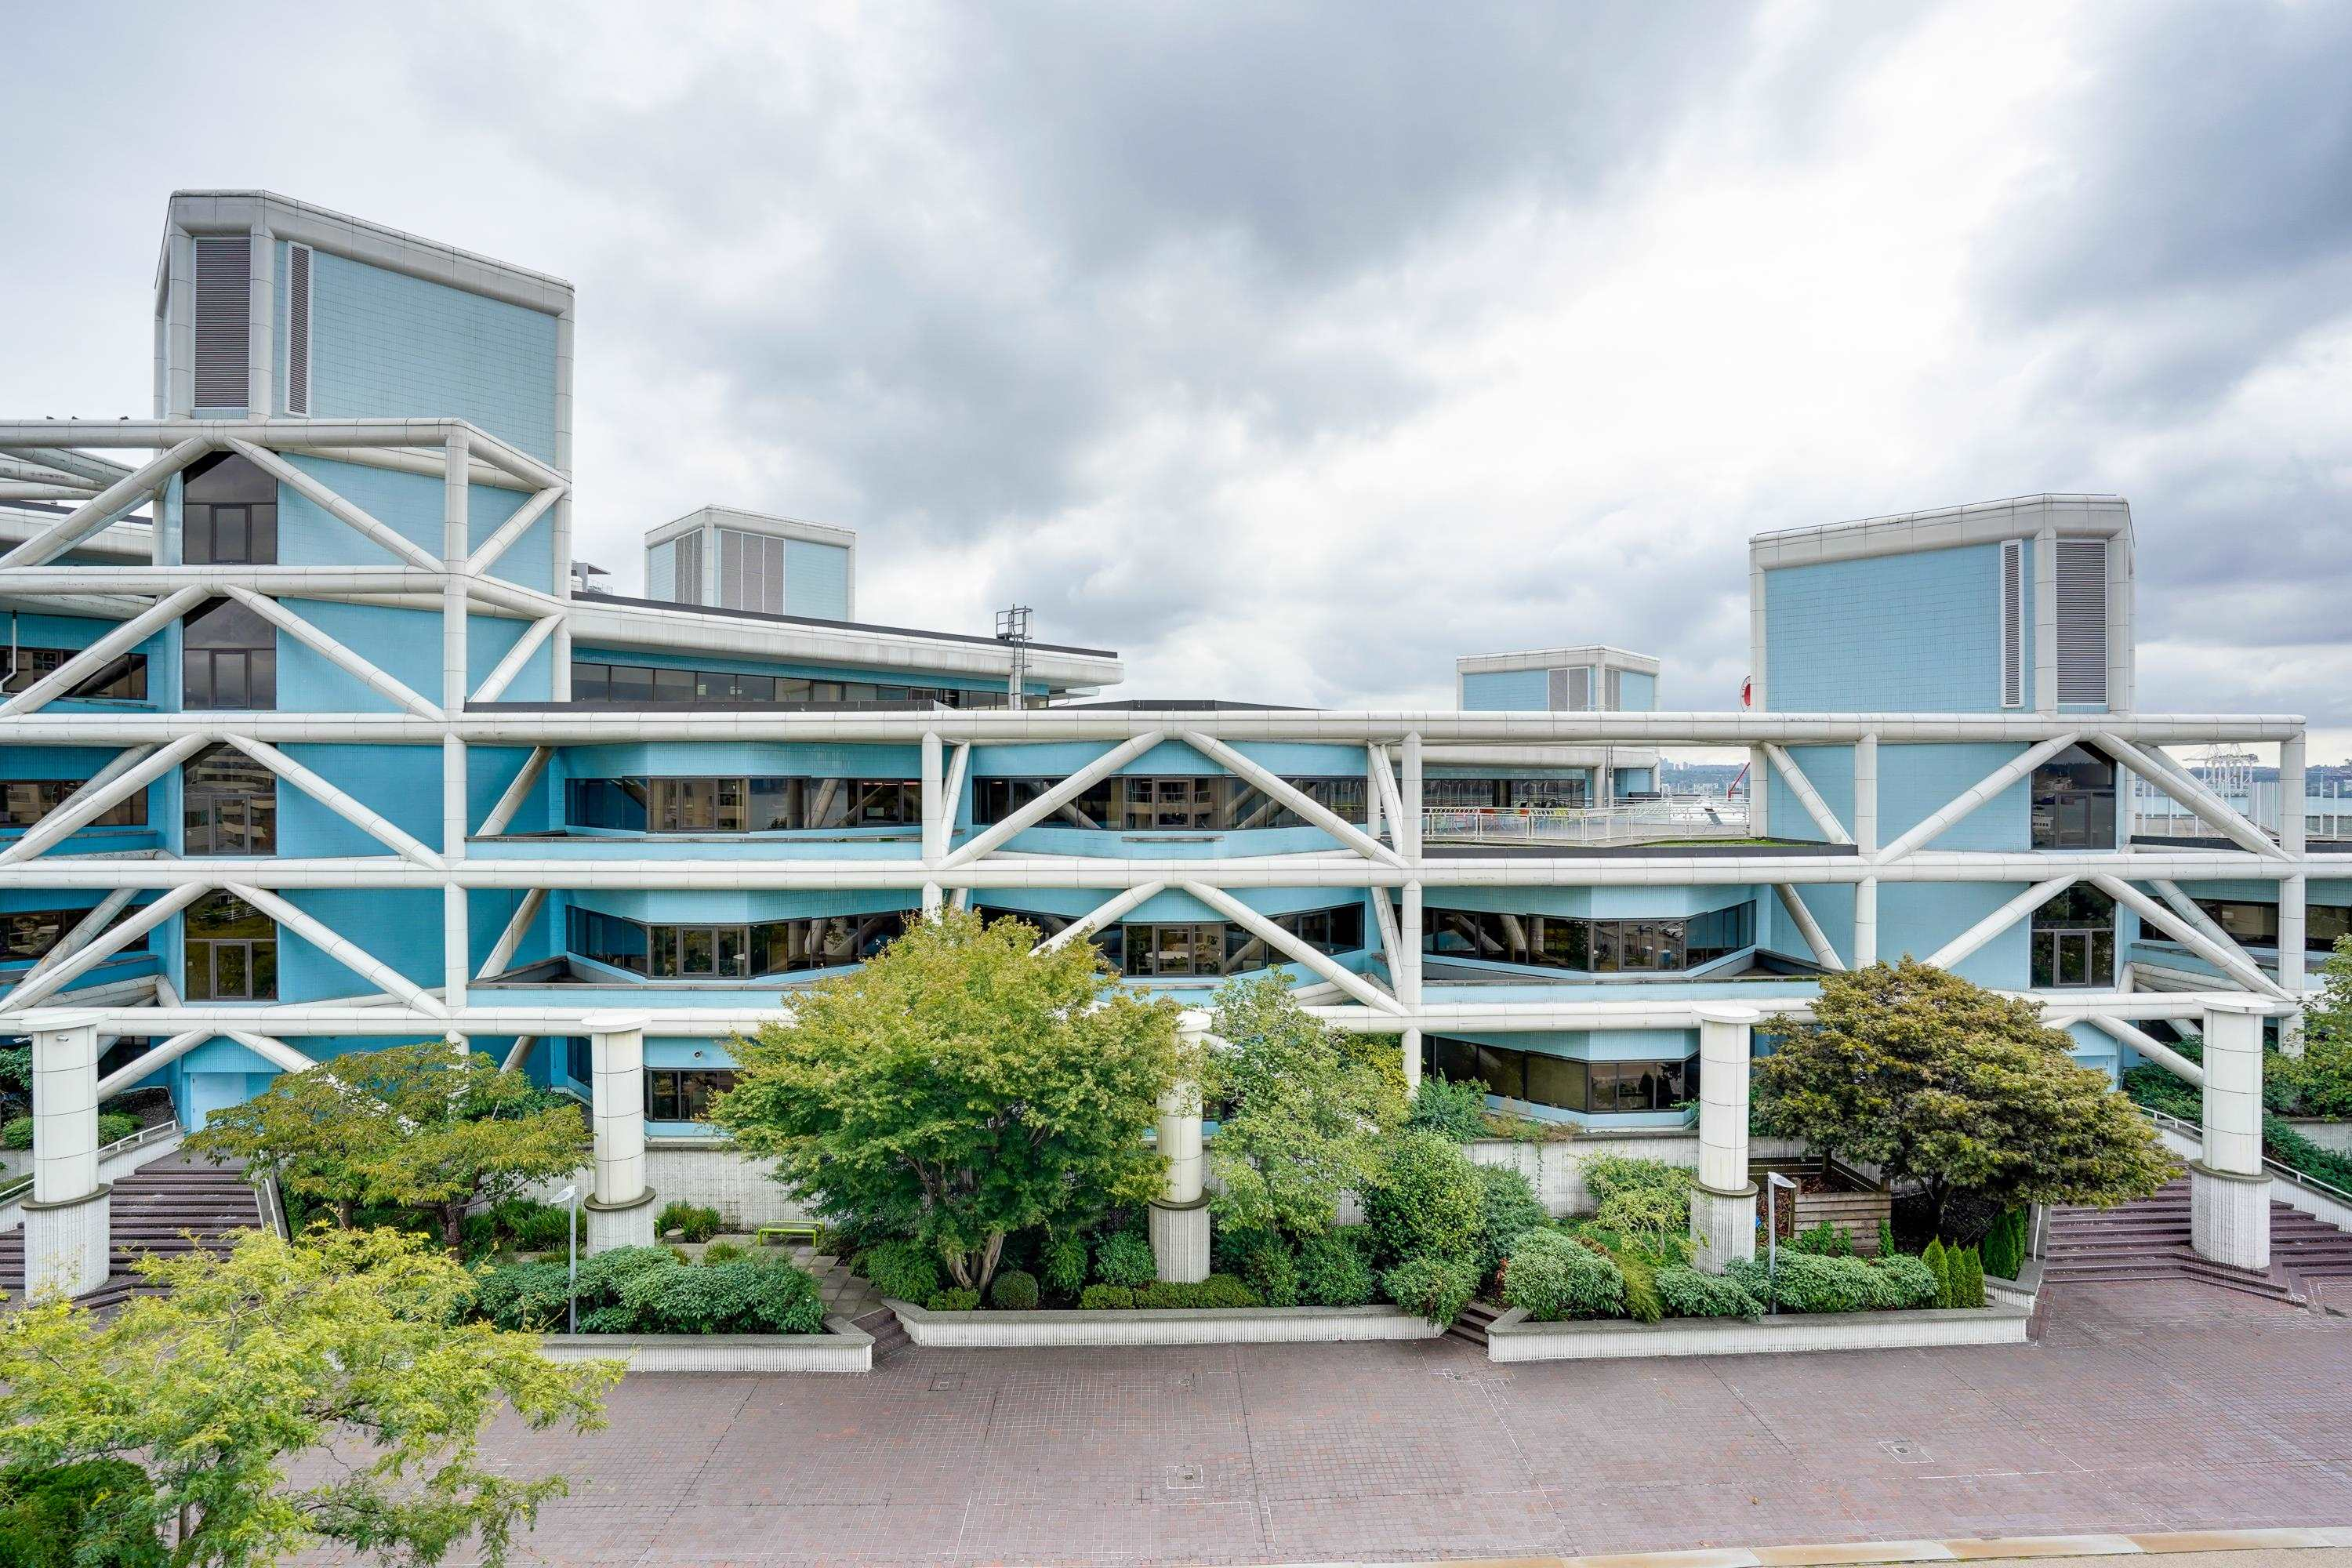 405 168 CHADWICK COURT - Lower Lonsdale Apartment/Condo for sale, 3 Bedrooms (R2619951) - #24